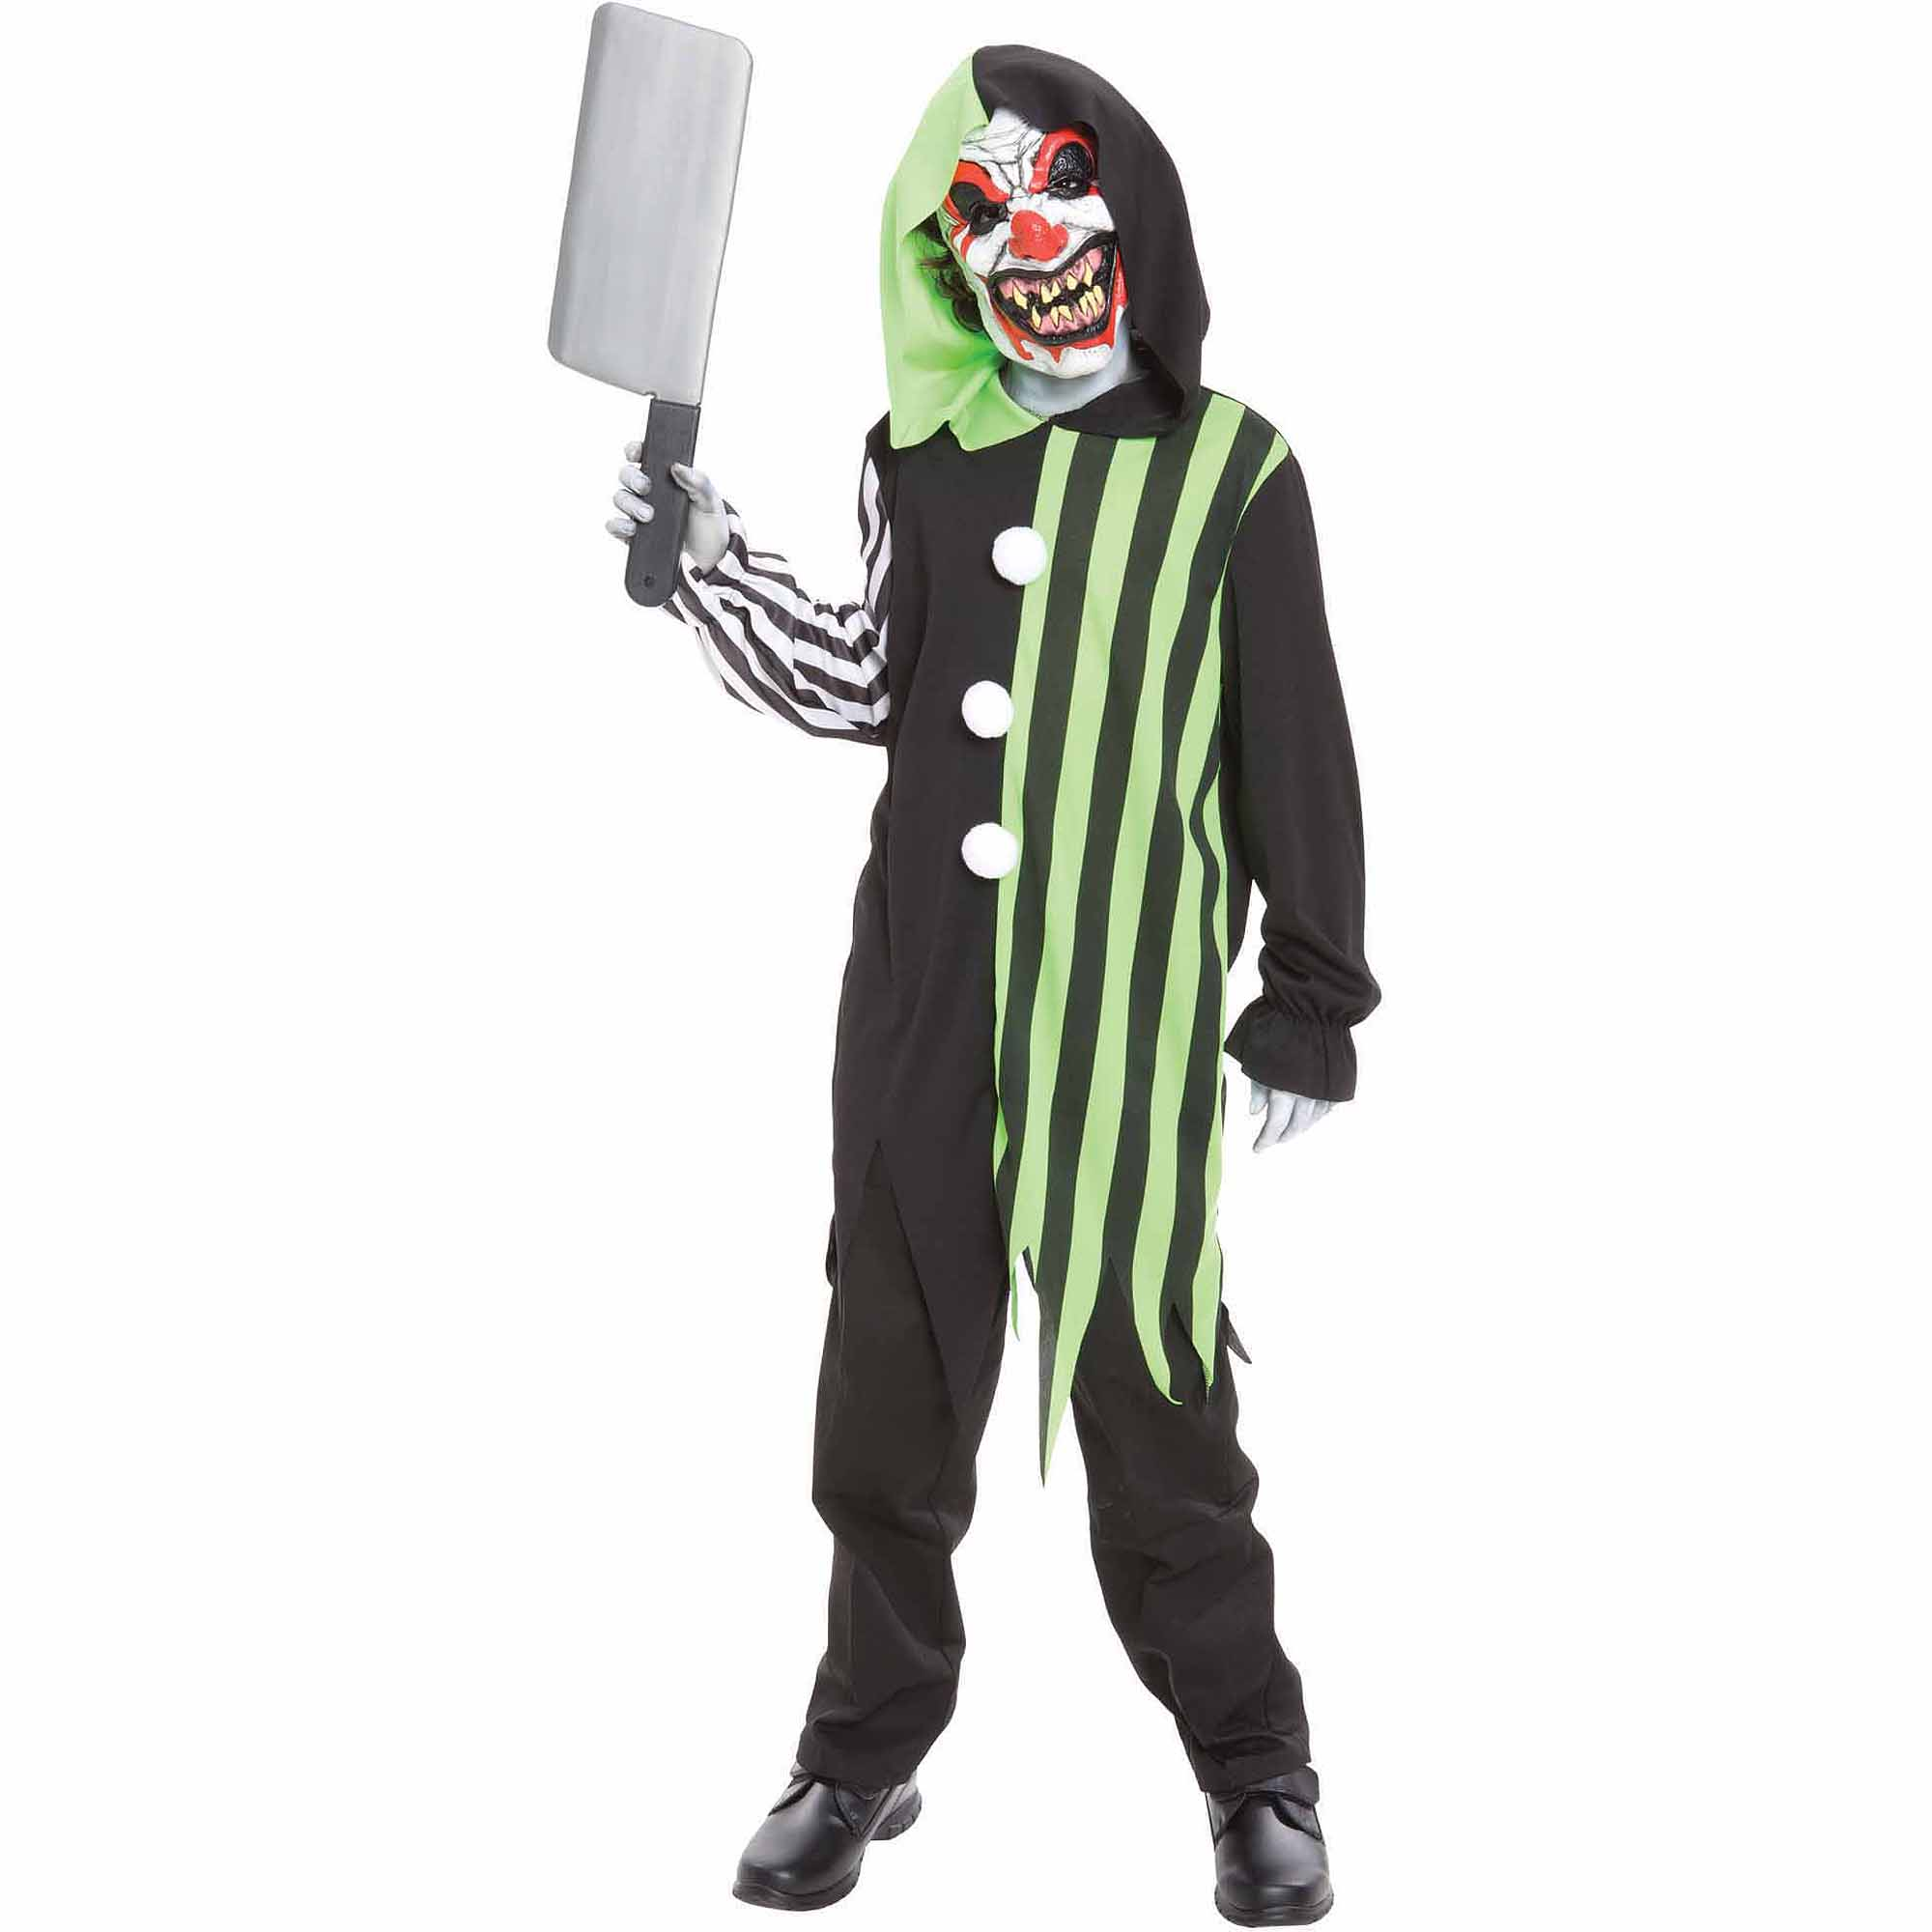 Killer Clown Halloween Costumes For Girls.Cleaver The Clown Child Halloween Costume